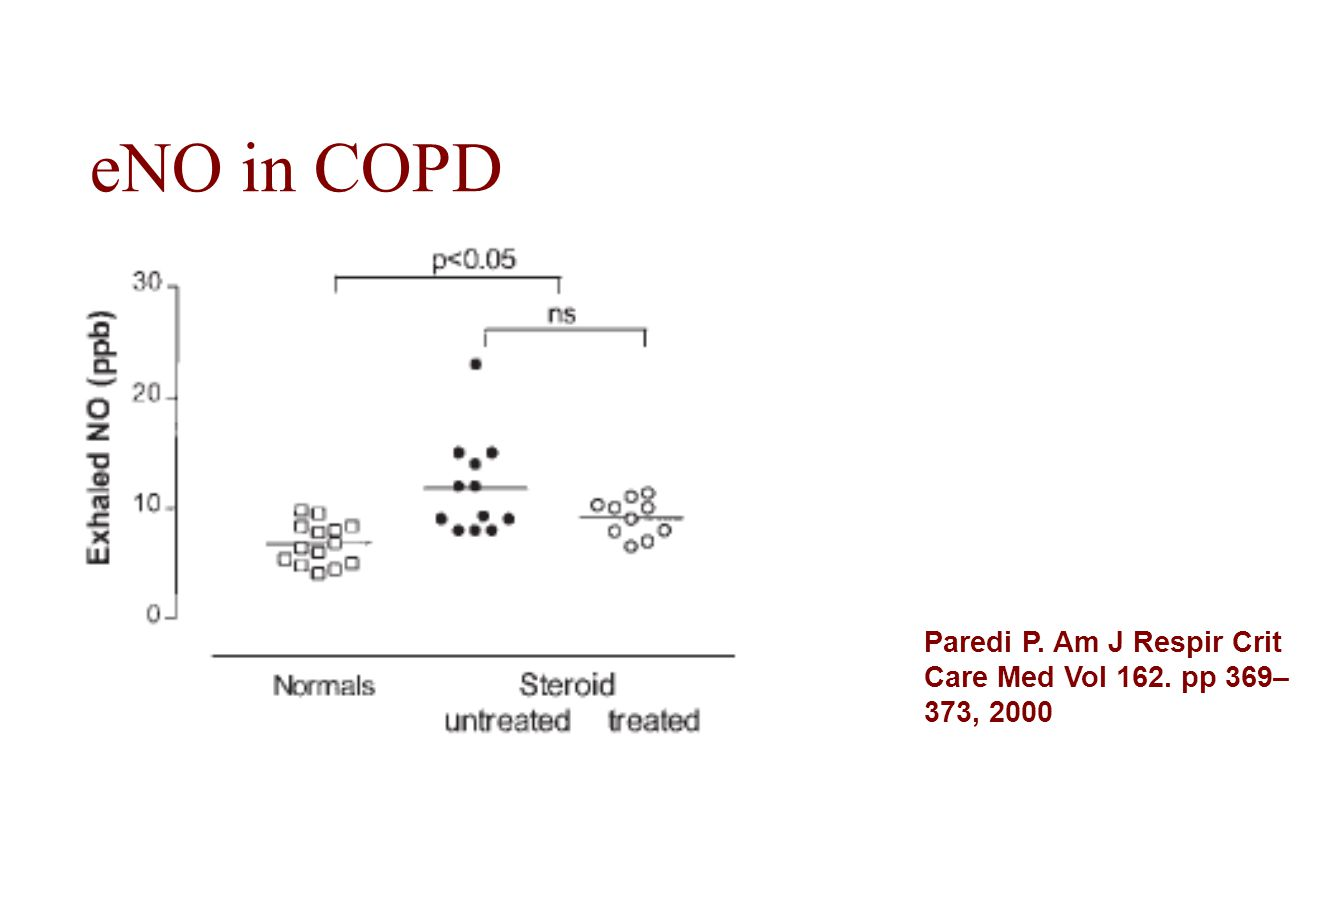 eNO in COPD Paredi P. Am J Respir Crit Care Med Vol 162. pp 369–373, 2000